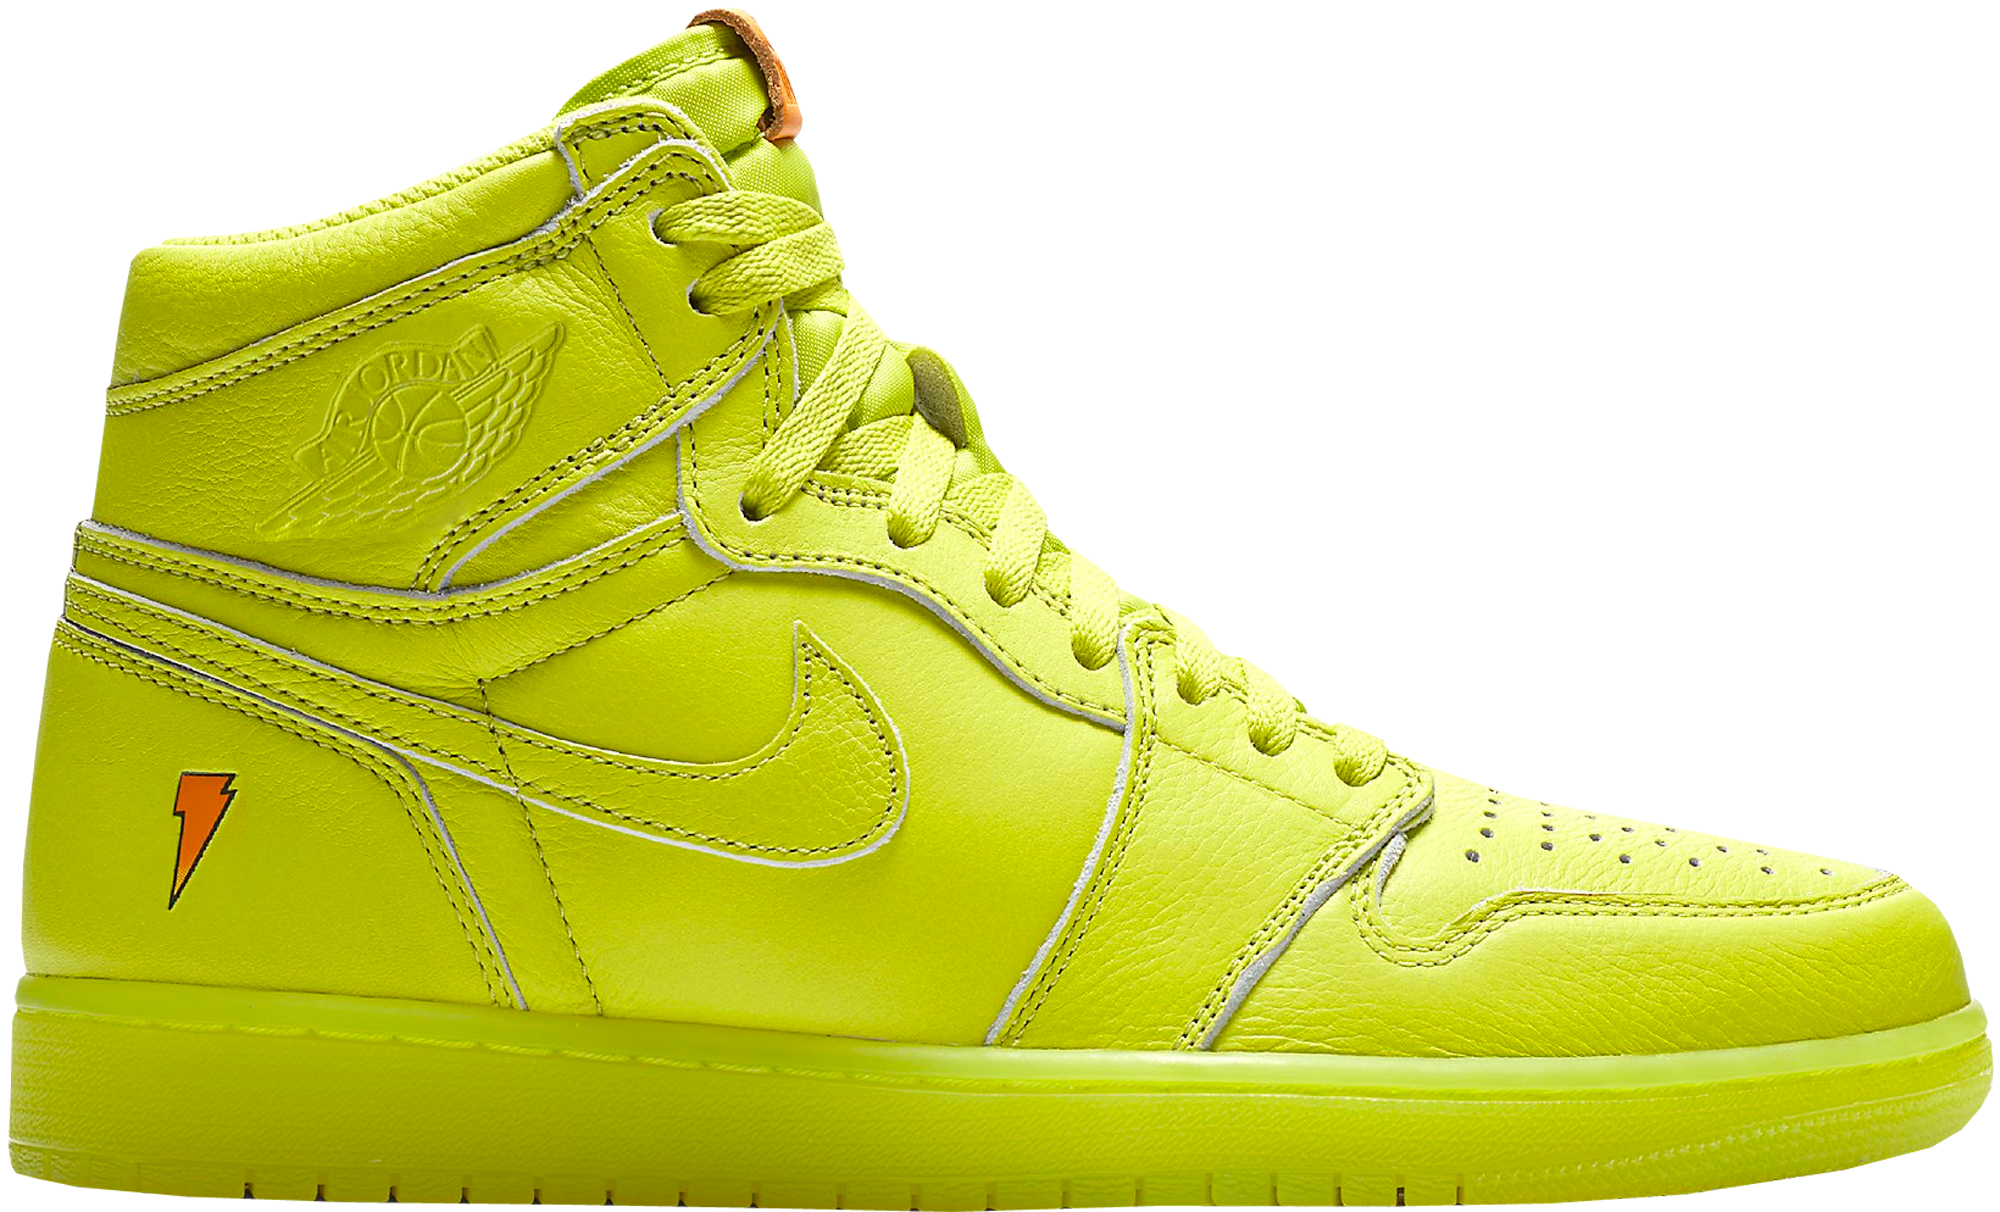 Jordan 1 Retro High Gatorade Cyber